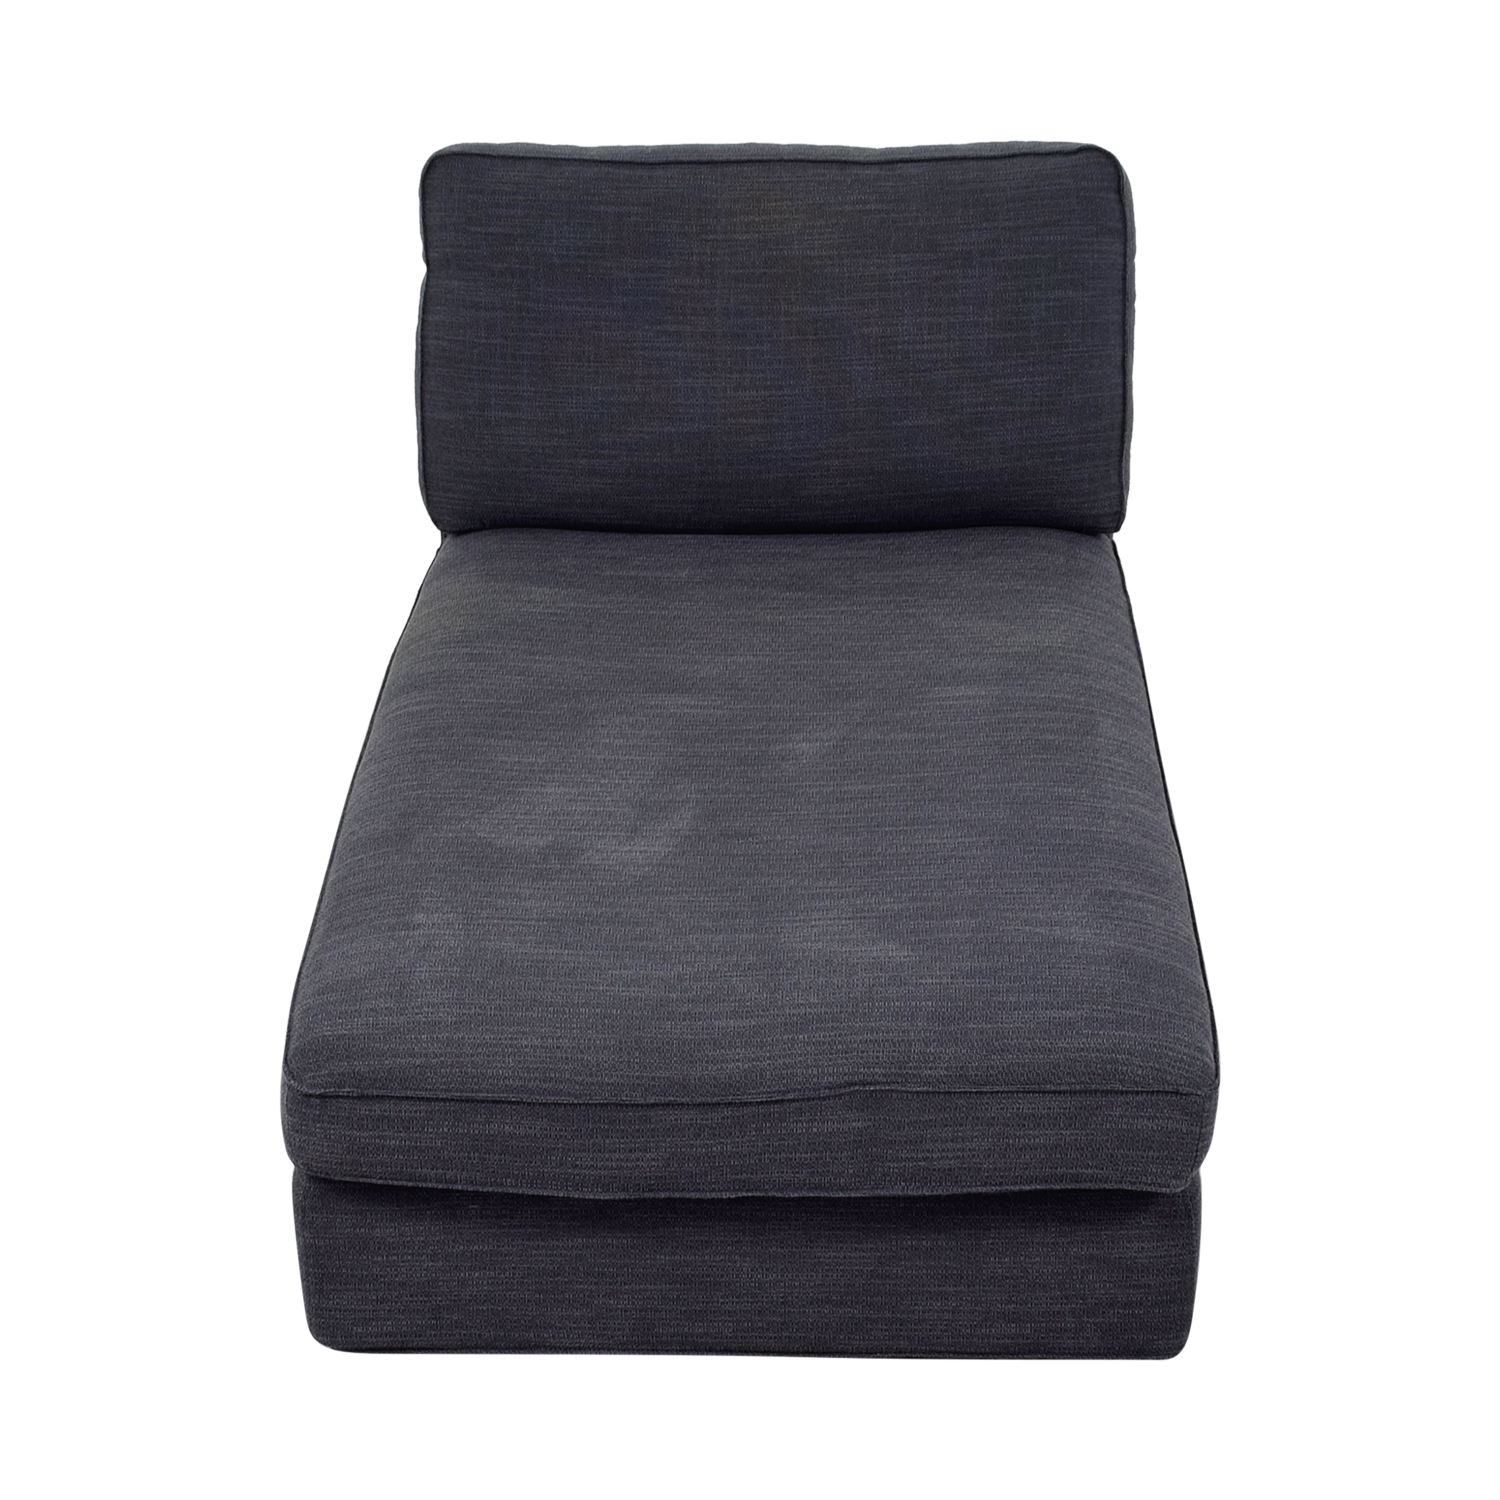 [%59% Off – Ikea Ikea Kivik Grey Chaise / Sofas Throughout Preferred Kivik Chaises|Kivik Chaises With Regard To Recent 59% Off – Ikea Ikea Kivik Grey Chaise / Sofas|Widely Used Kivik Chaises With 59% Off – Ikea Ikea Kivik Grey Chaise / Sofas|Widely Used 59% Off – Ikea Ikea Kivik Grey Chaise / Sofas Intended For Kivik Chaises%] (View 1 of 15)